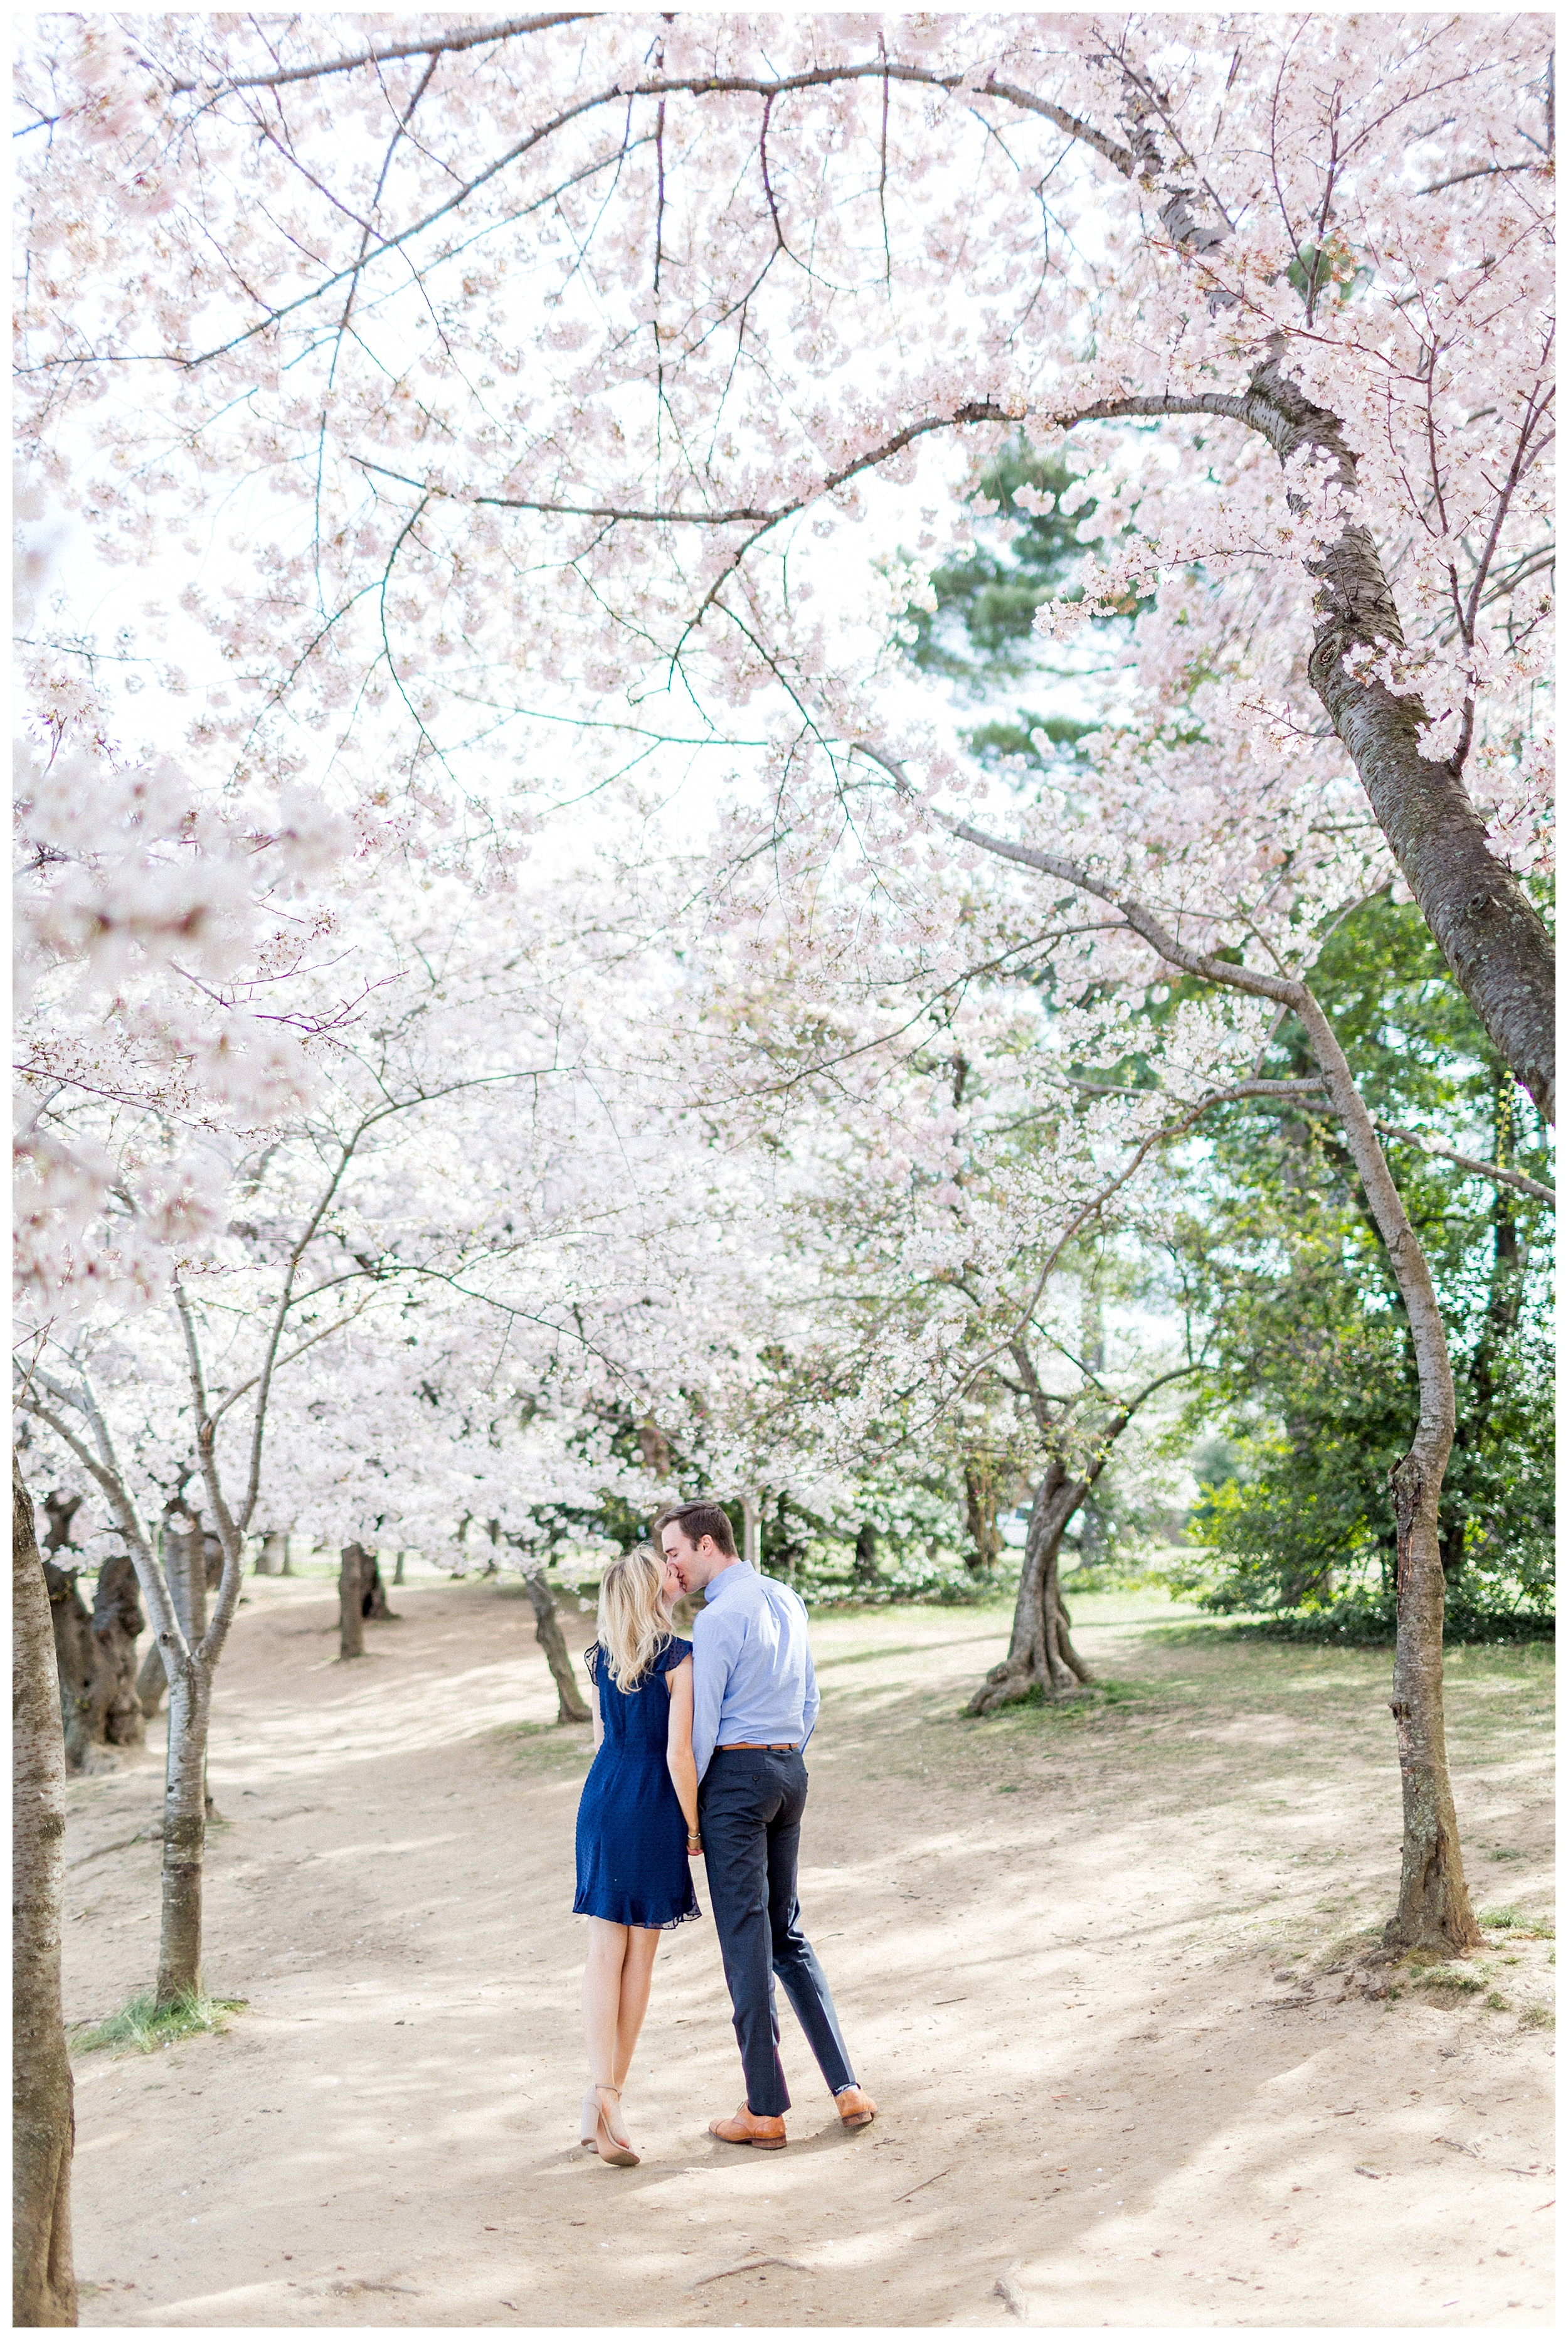 District of Columbia Cherry Blossom Engagement Session_0007.jpg